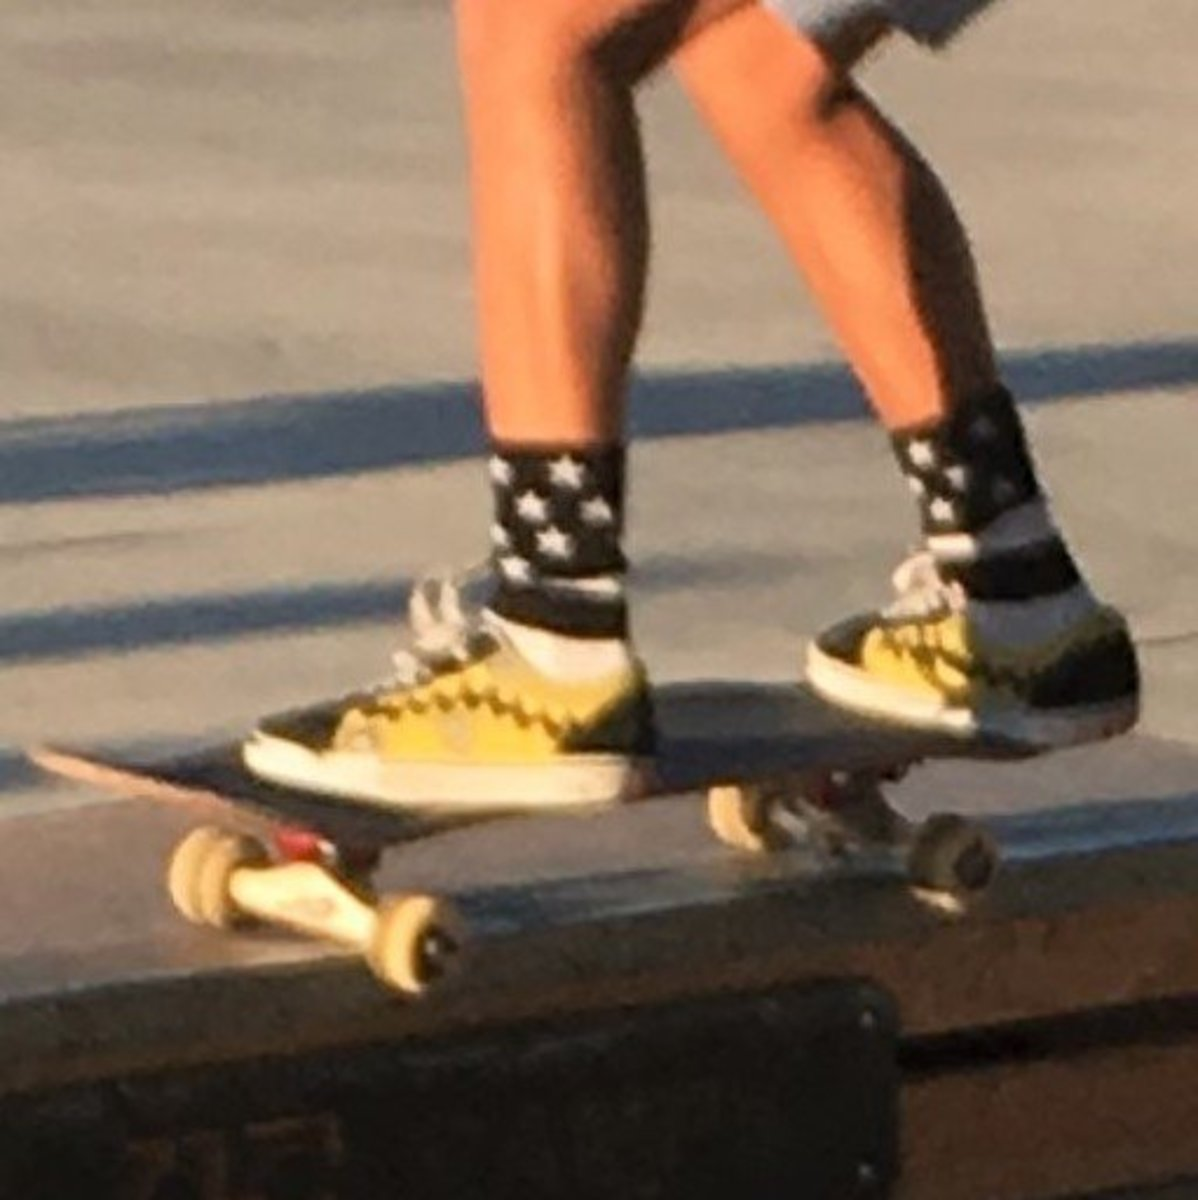 Skaters dare to be different, even in what they wear.